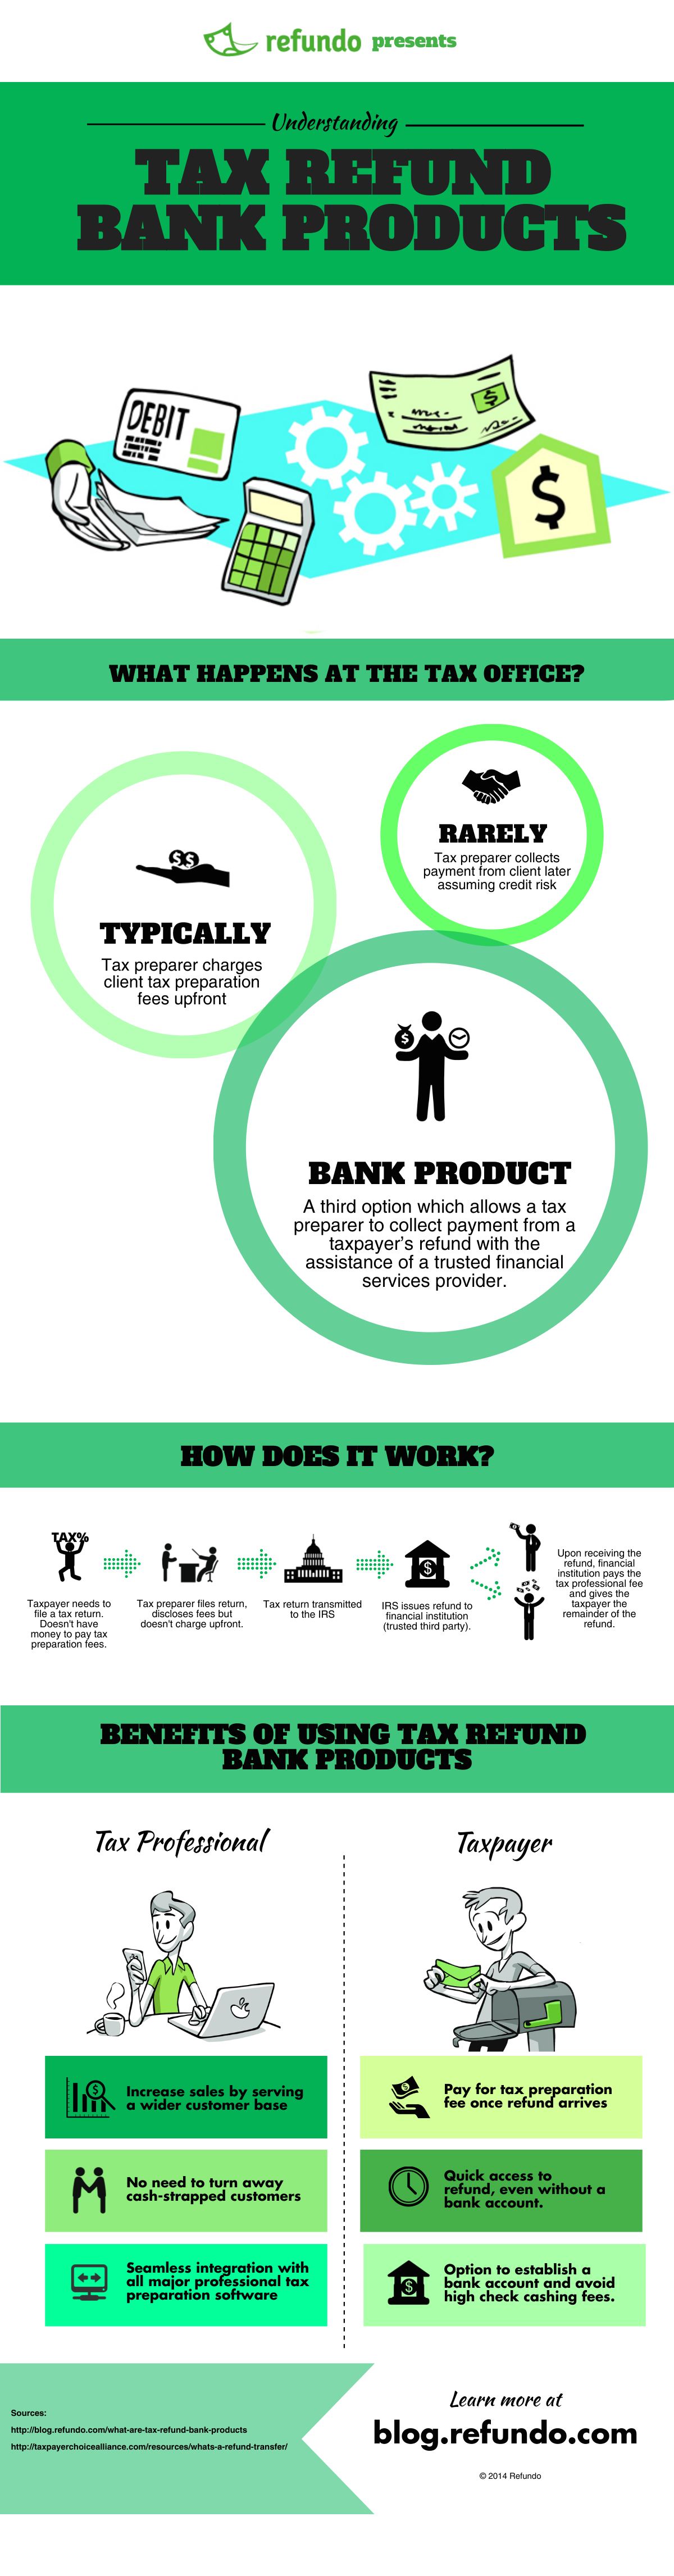 Tax_Refund_Bank_Products_(2)